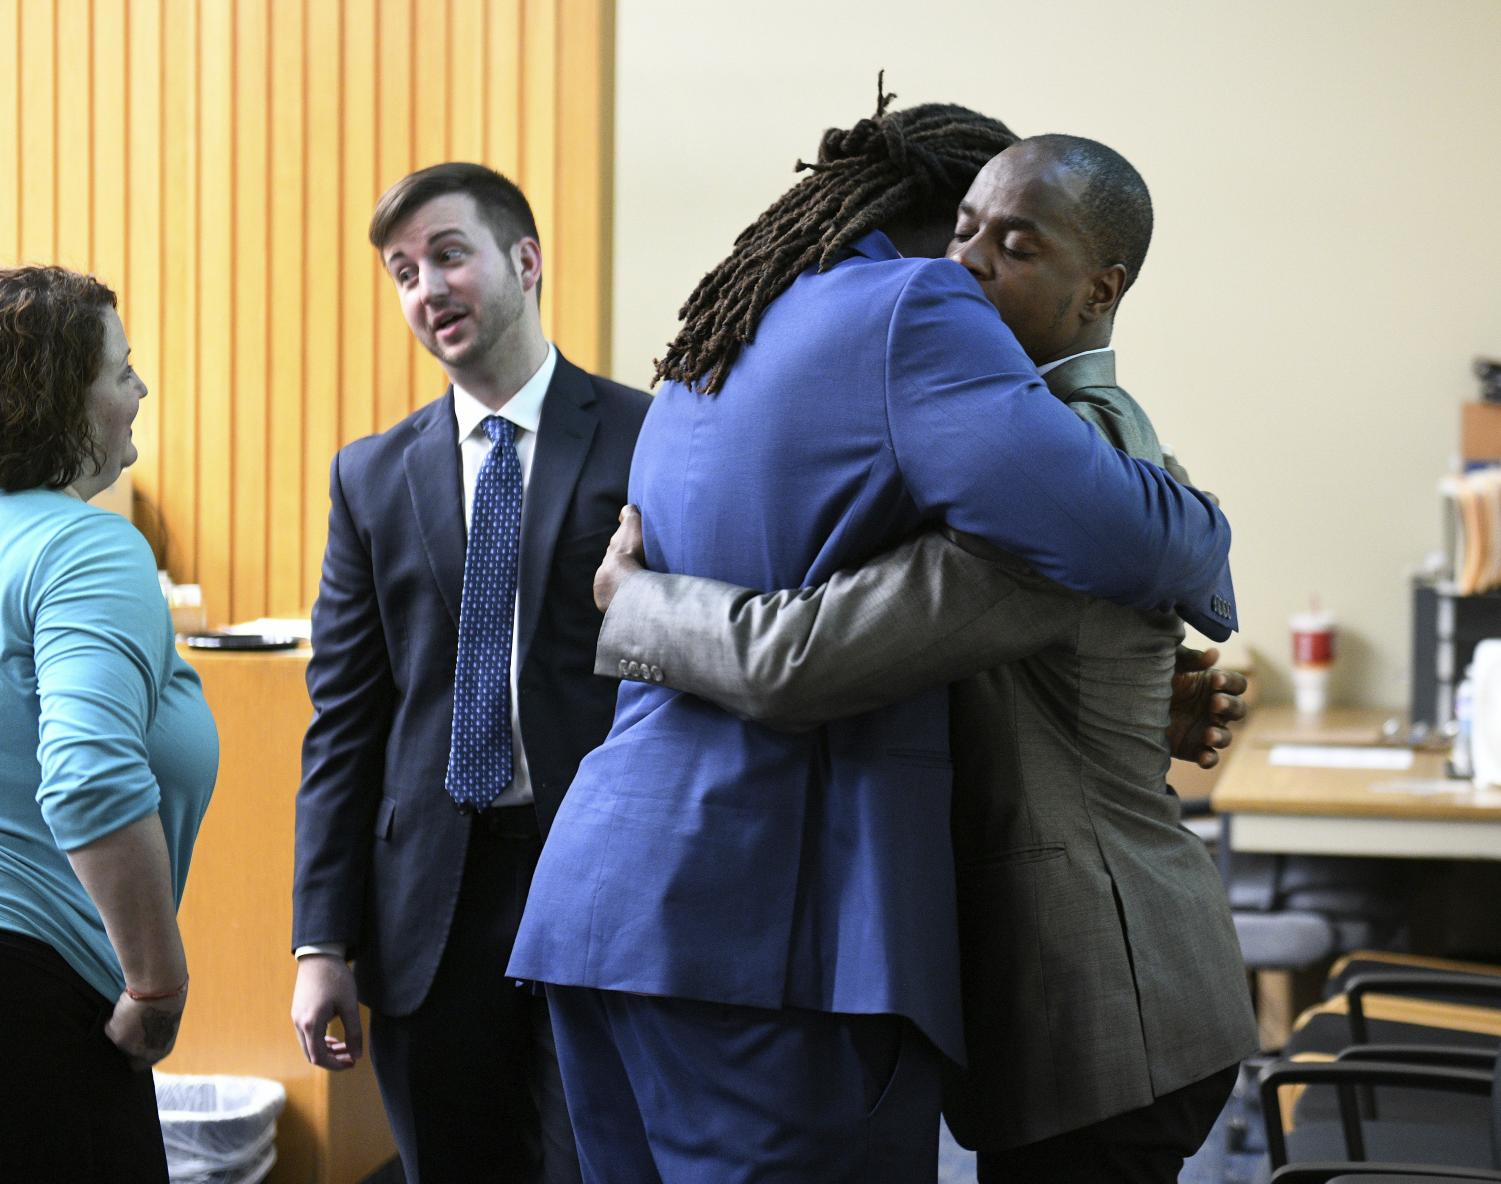 A.J. Johnson, left, and Michael Williams hug after a jury acquitted them of aggravated rape charges Friday, July 27, 2018, in Knoxville, Tenn. Johnson and Williams were indicted on February 2015 after a woman said both men raped her during a party at Johnson's apartment in the early morning hours of Nov. 16, 2014. Johnson and Williams were suspended from the Tennessee football team less than 48 hours after the party and never played for Tennessee again. (Michael Patrick/Knoxville News Sentinel via AP)